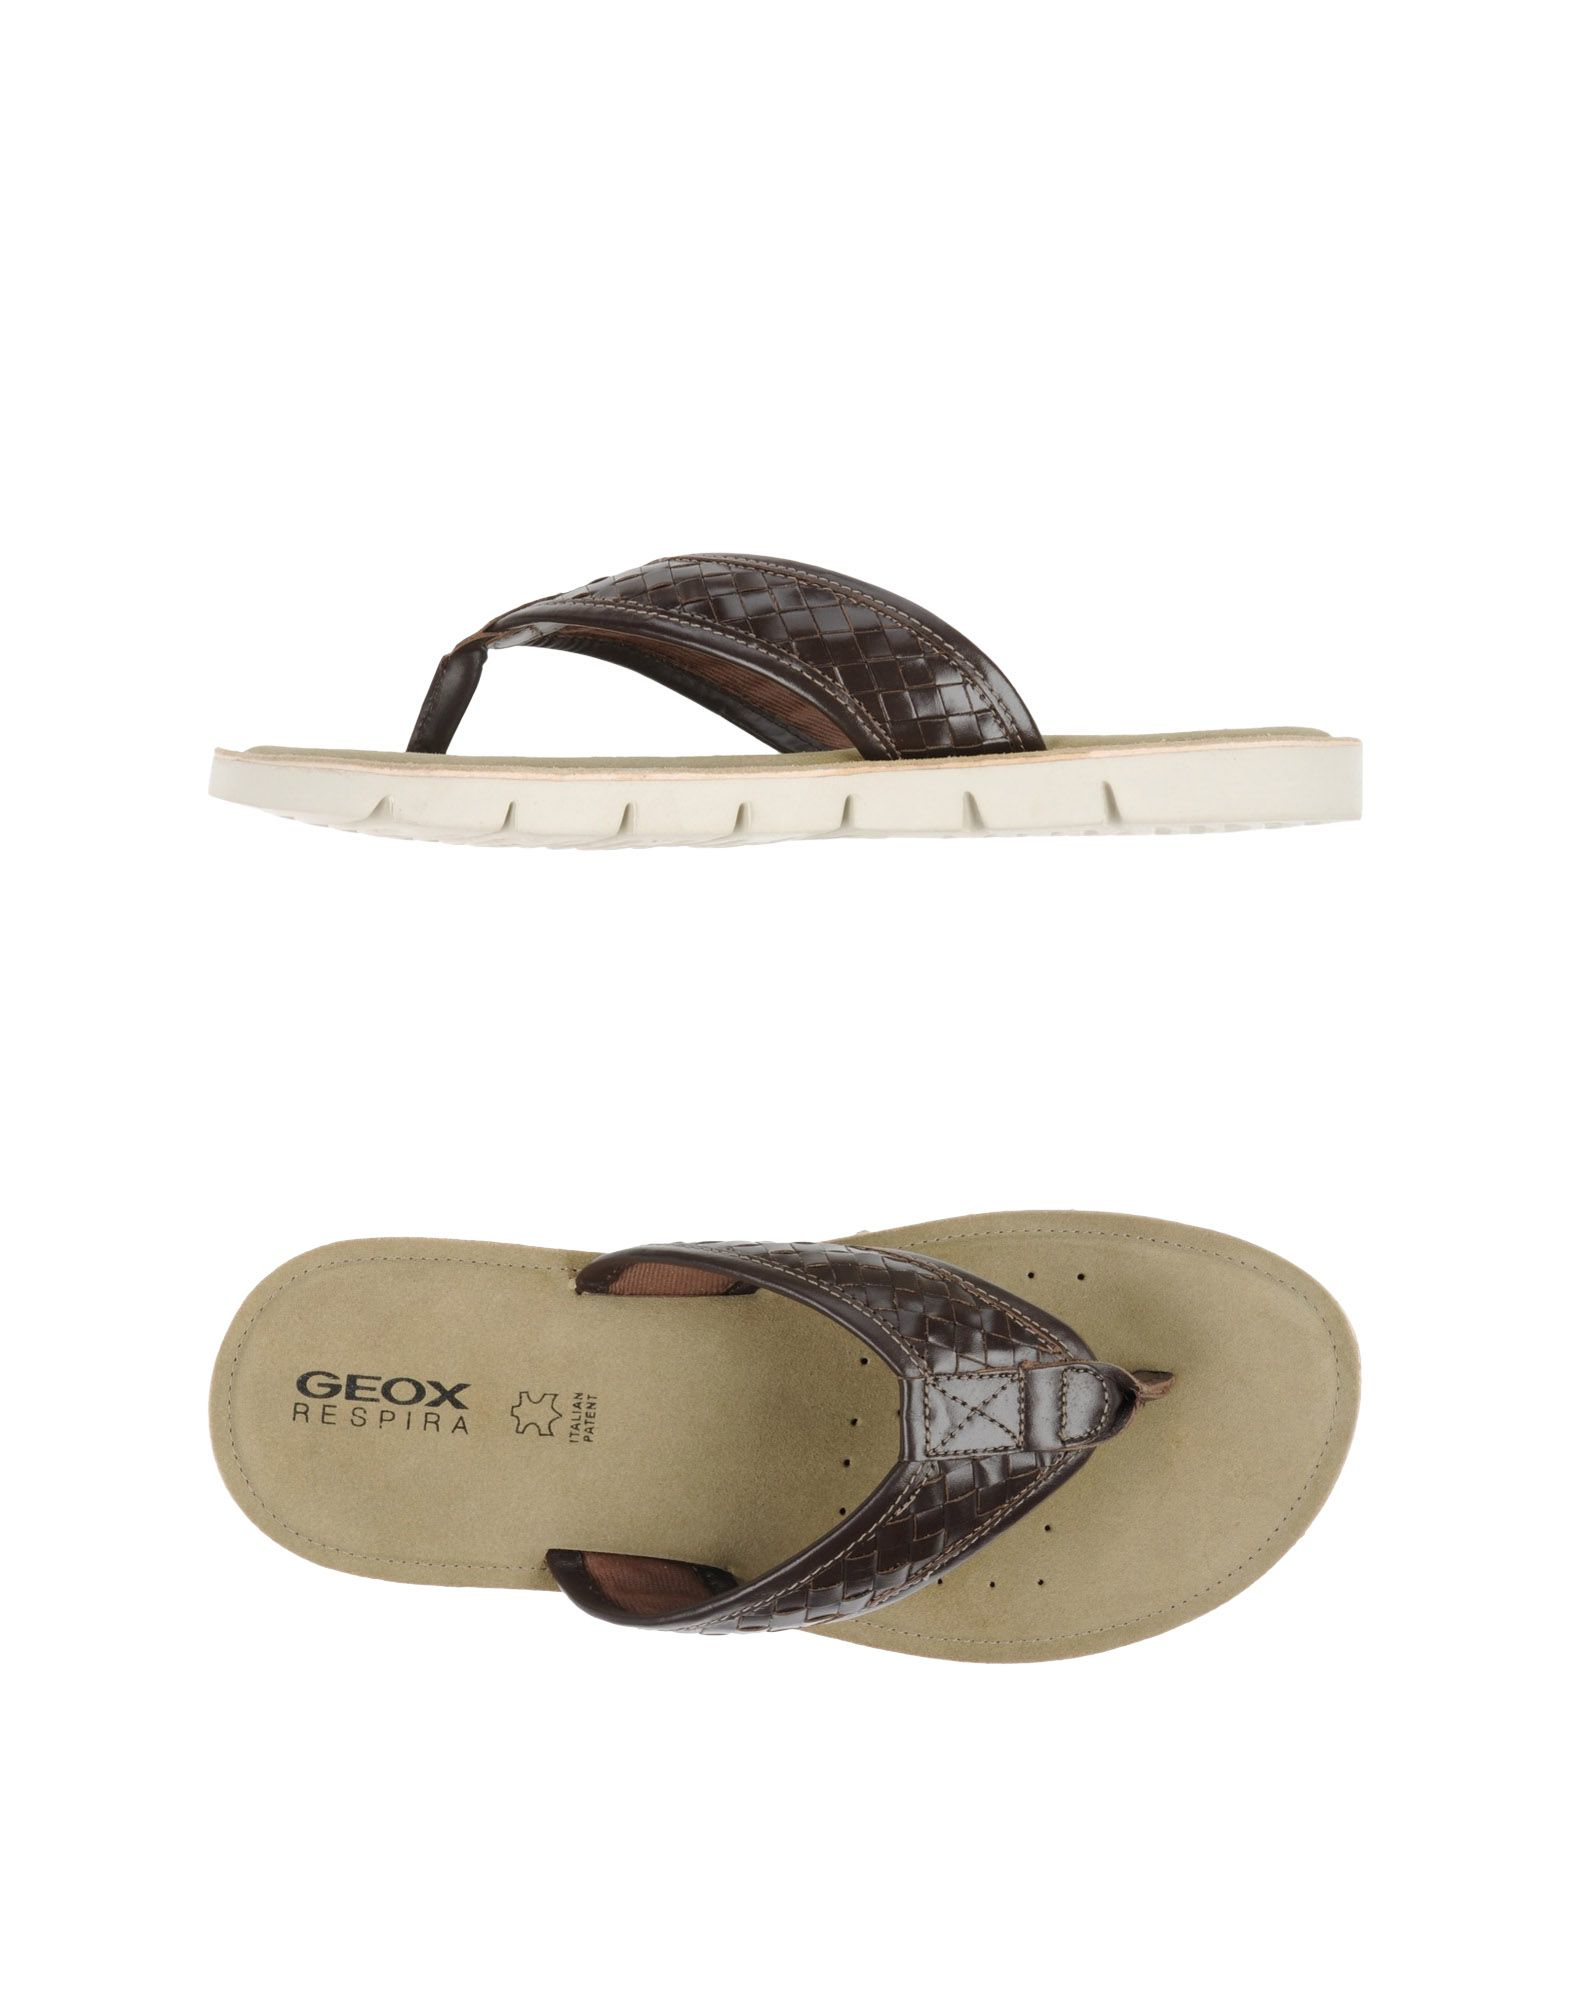 155c8b8a4 Geox Thong Sandal in Brown for Men - Lyst